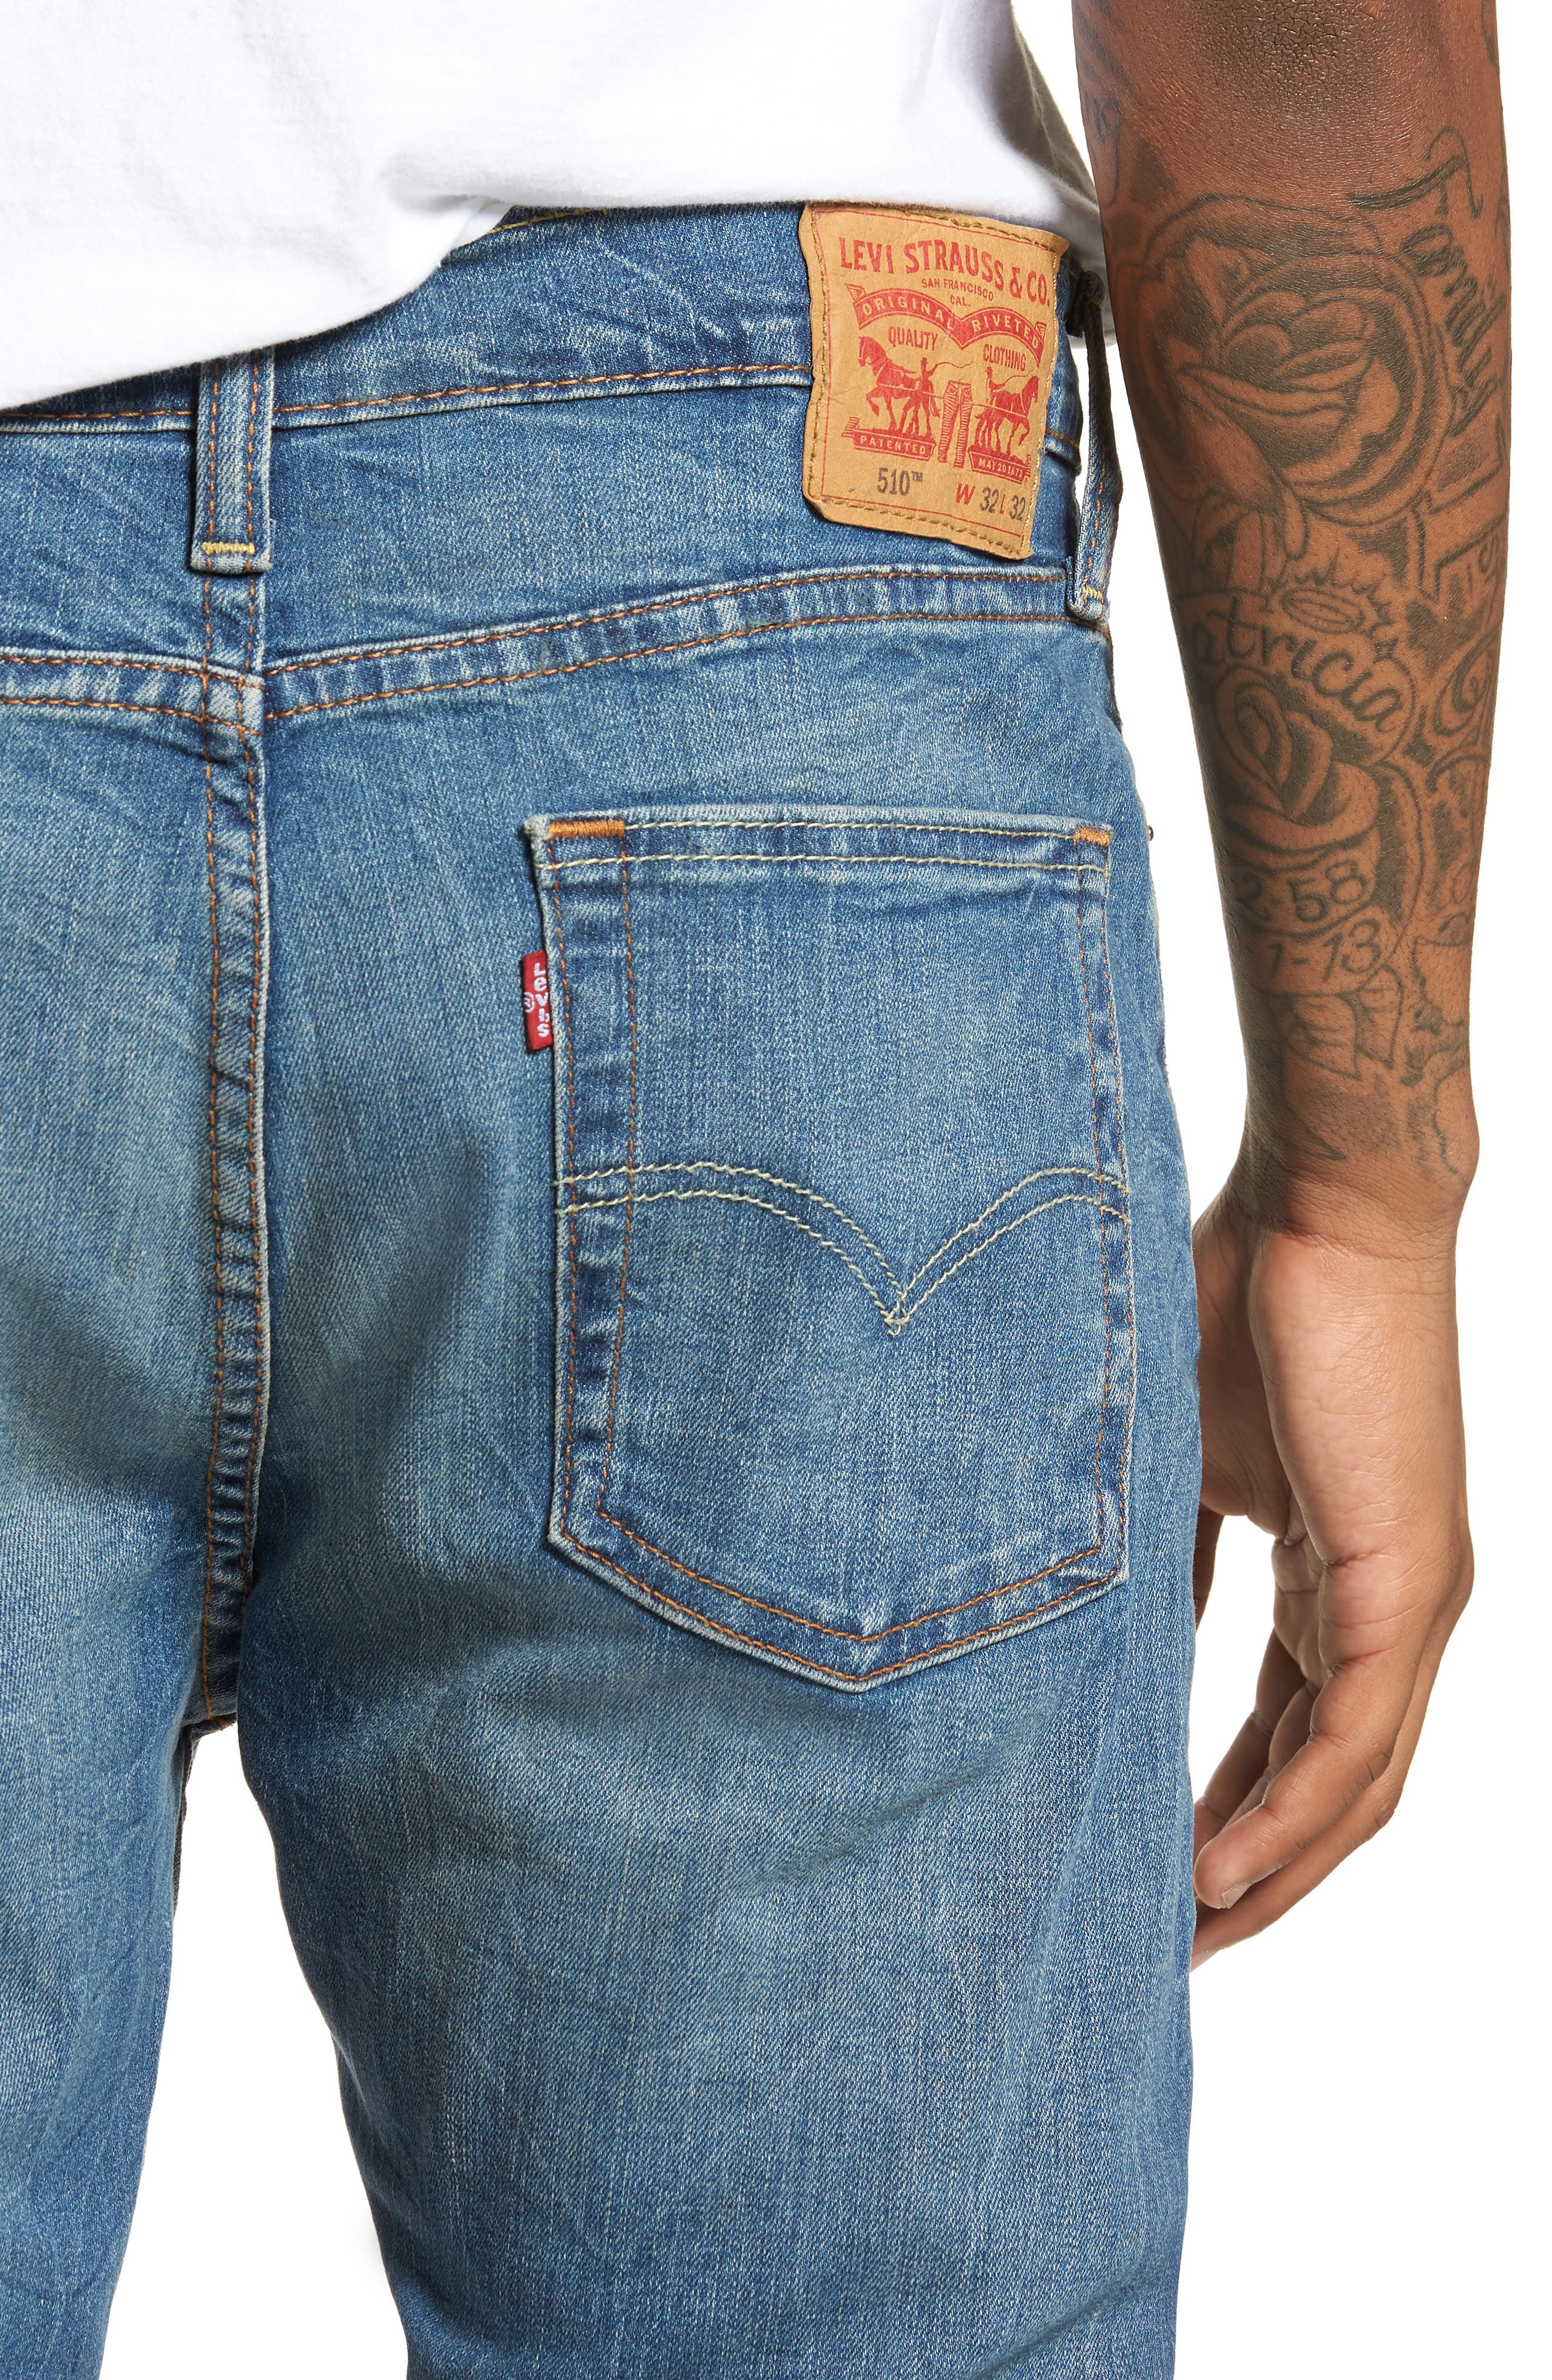 510<sup>™</sup> Skinny Fit Jeans,                             Alternate thumbnail 4, color,                             Lake Anza